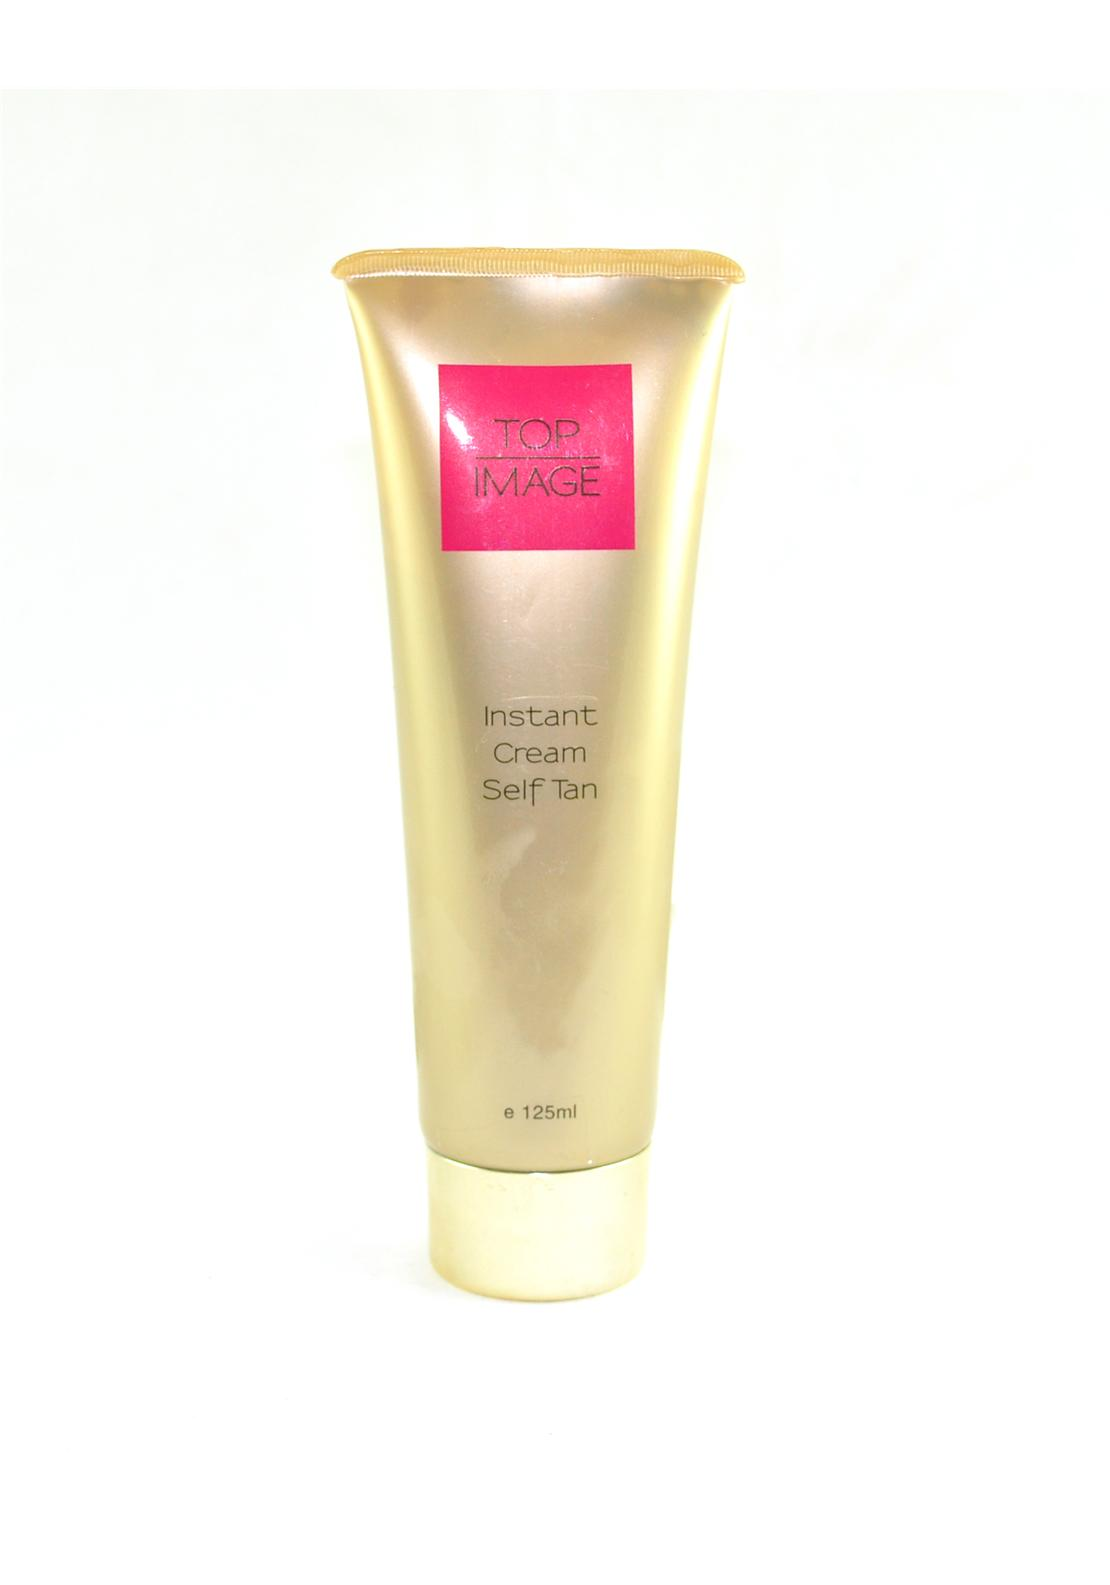 Top Image Instant Cream Self Tan